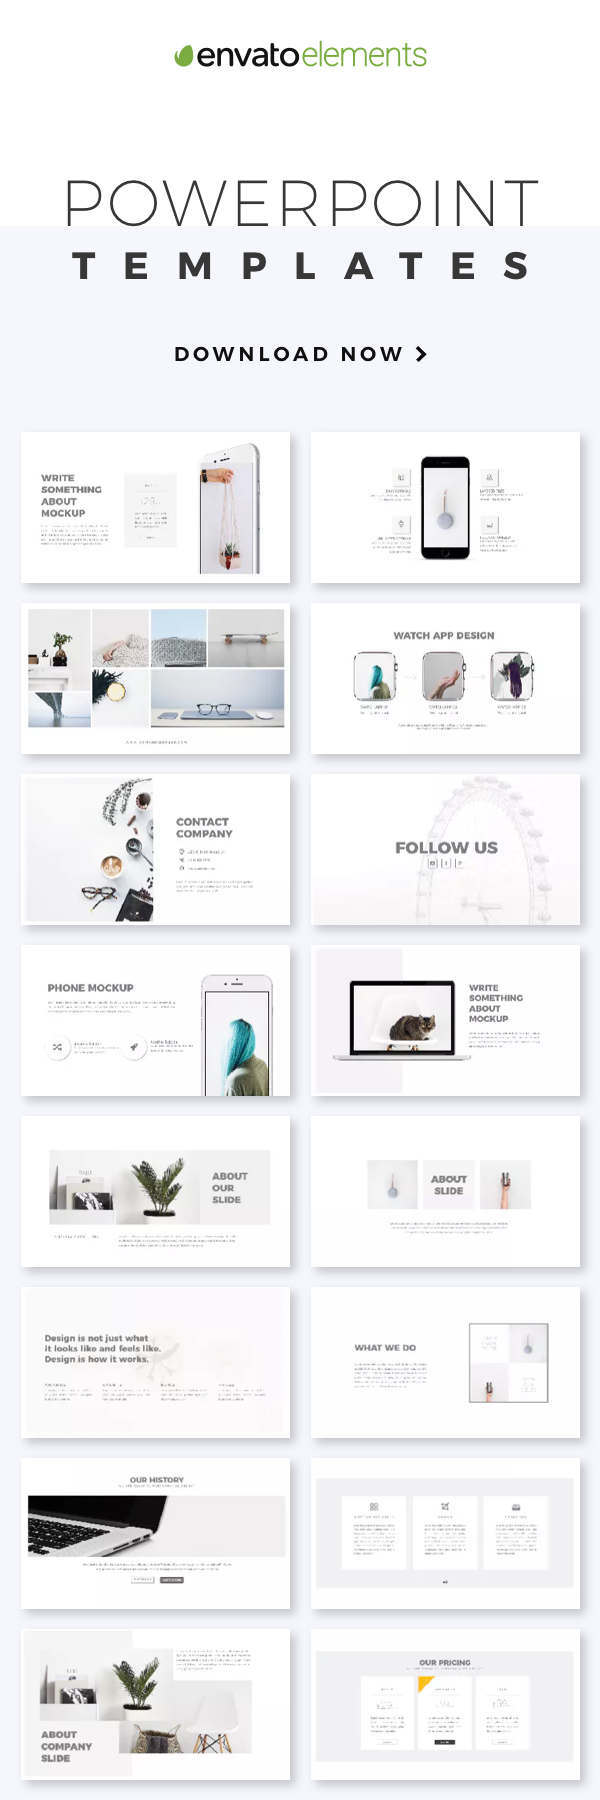 Unlimited Downloads Of 2018s Best Powerpoint Templates Design